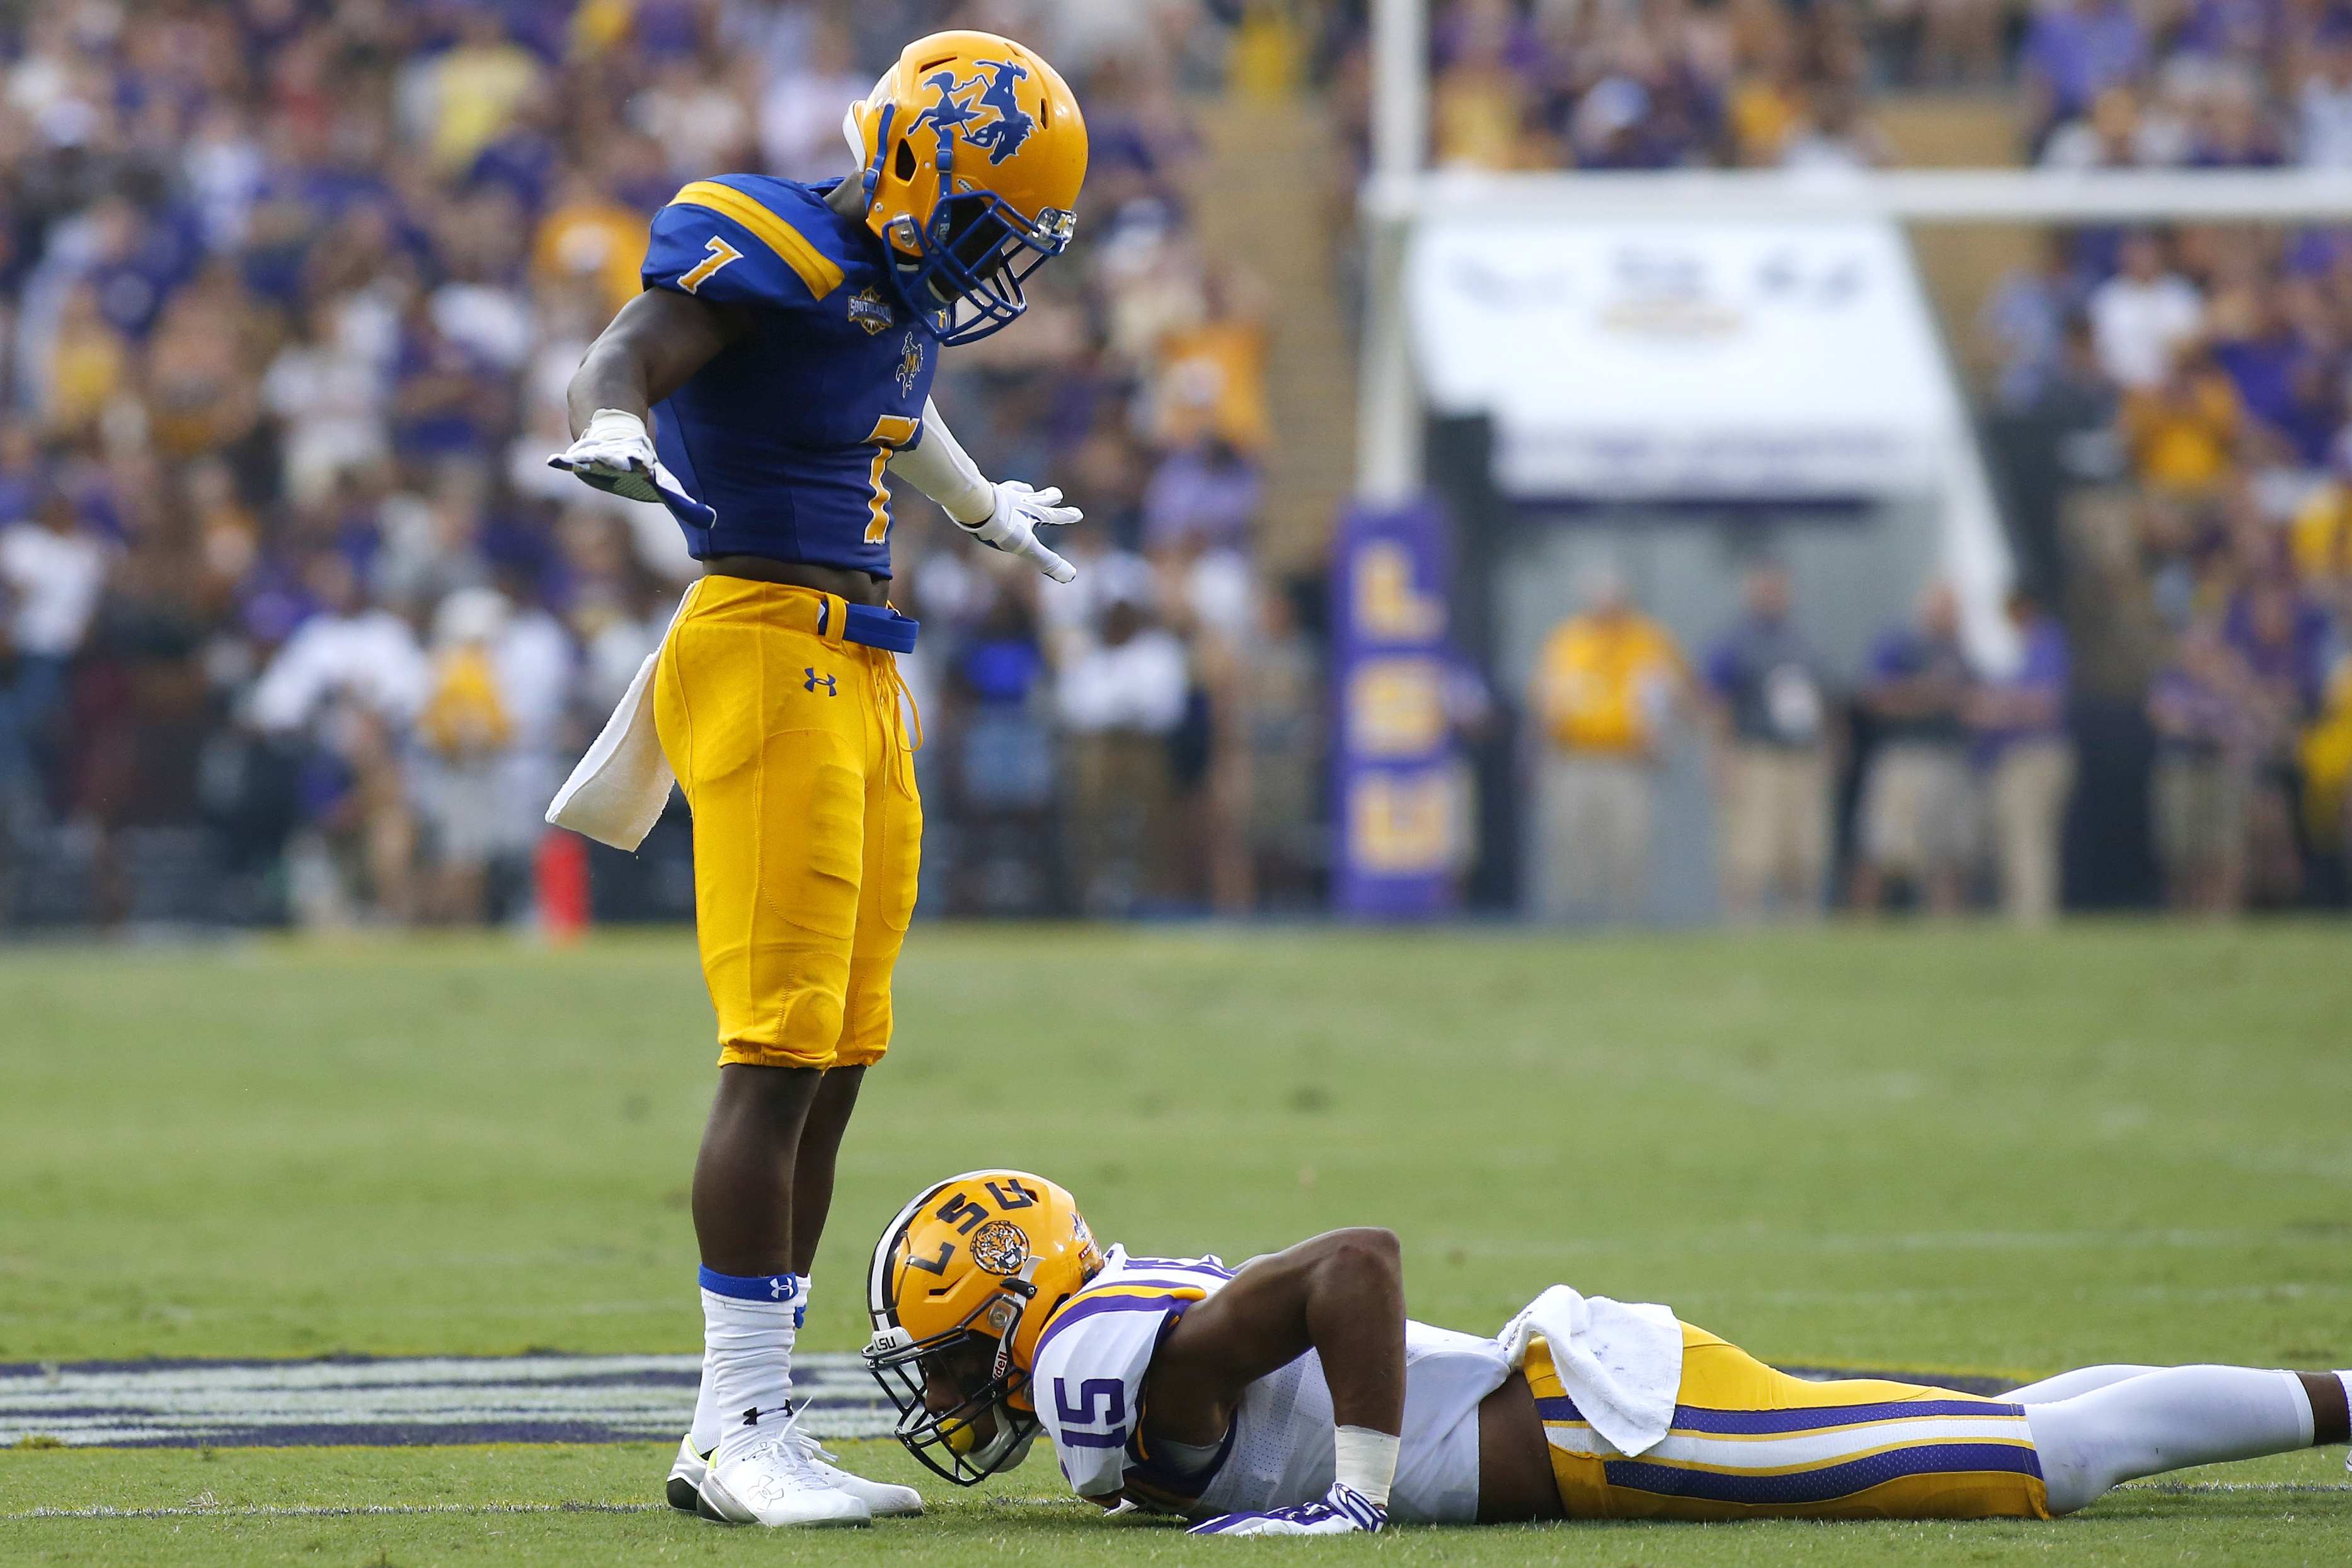 McNeese State defensive back Dominique Hill (7) stands over LSU wide receiver Malachi Dupre (15) after breaking up a pass during the first half of an NCAA college football game in Baton Rouge, La., Saturday, Sept. 5, 2015. (AP Photo/Jonathan Bachman)